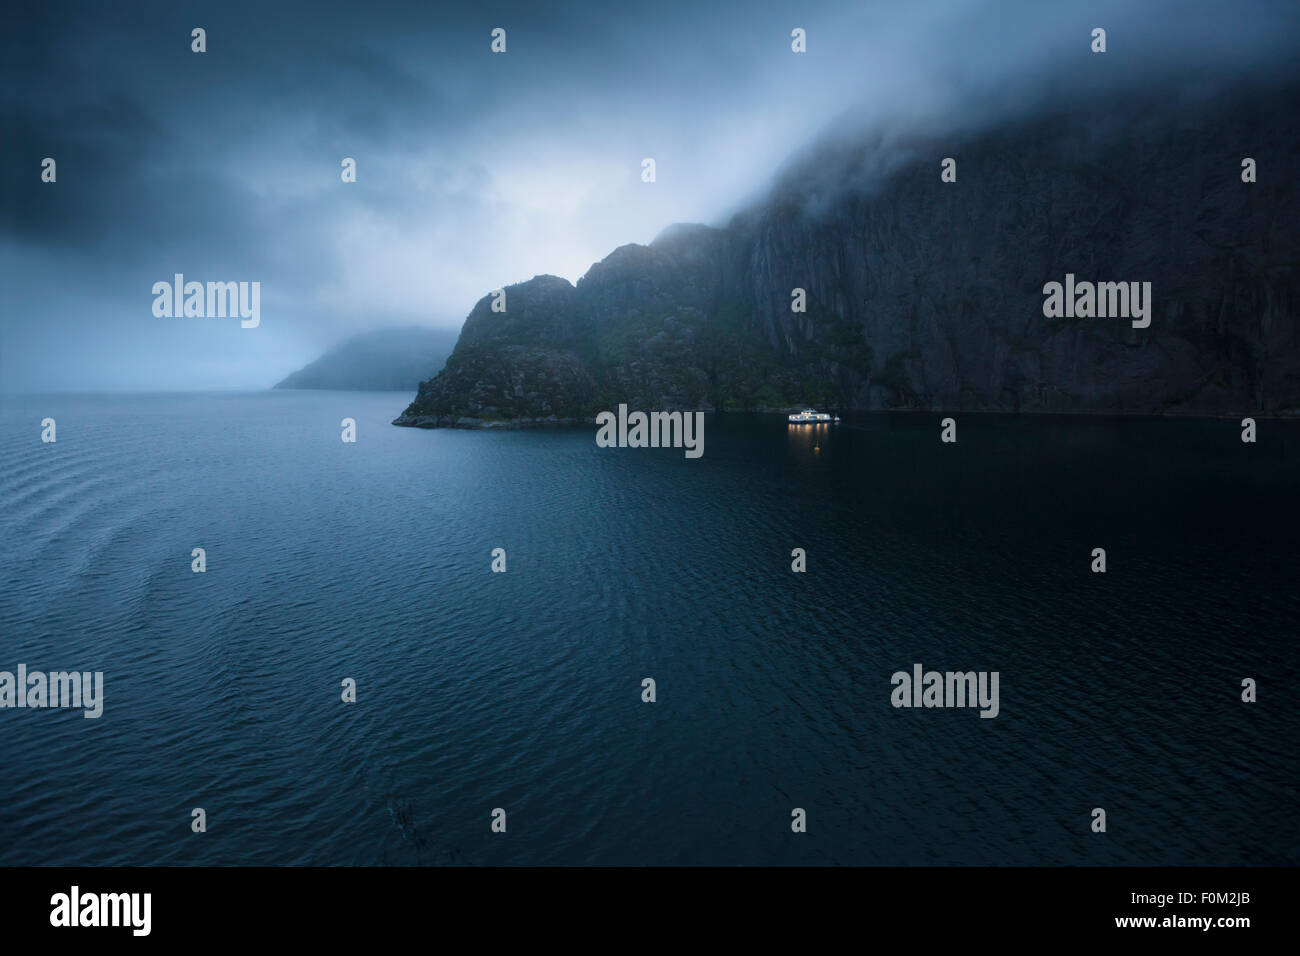 Mystical, foggy evening mood in a fjord, Norway - Stock Image